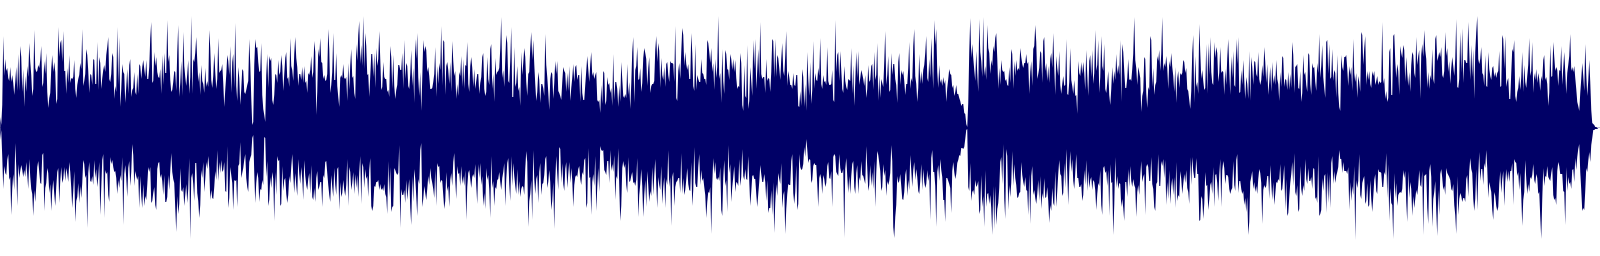 waveform of track #141772